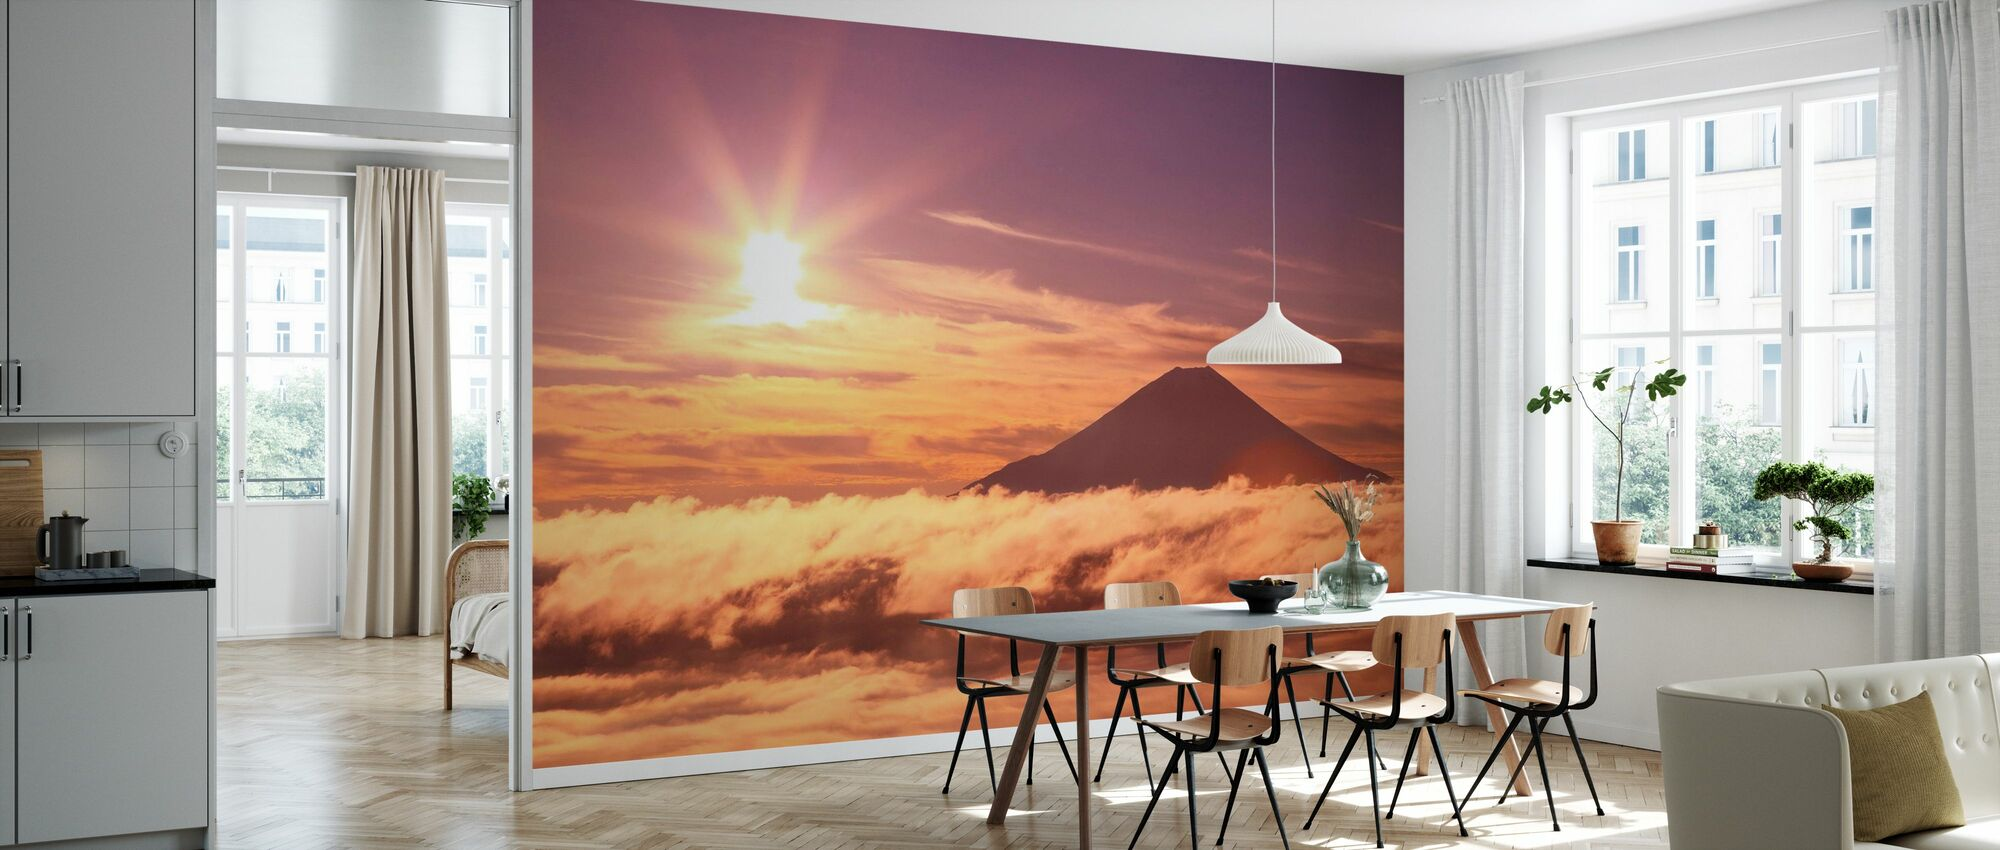 Mount Fuji and Sea of Clouds - Wallpaper - Kitchen